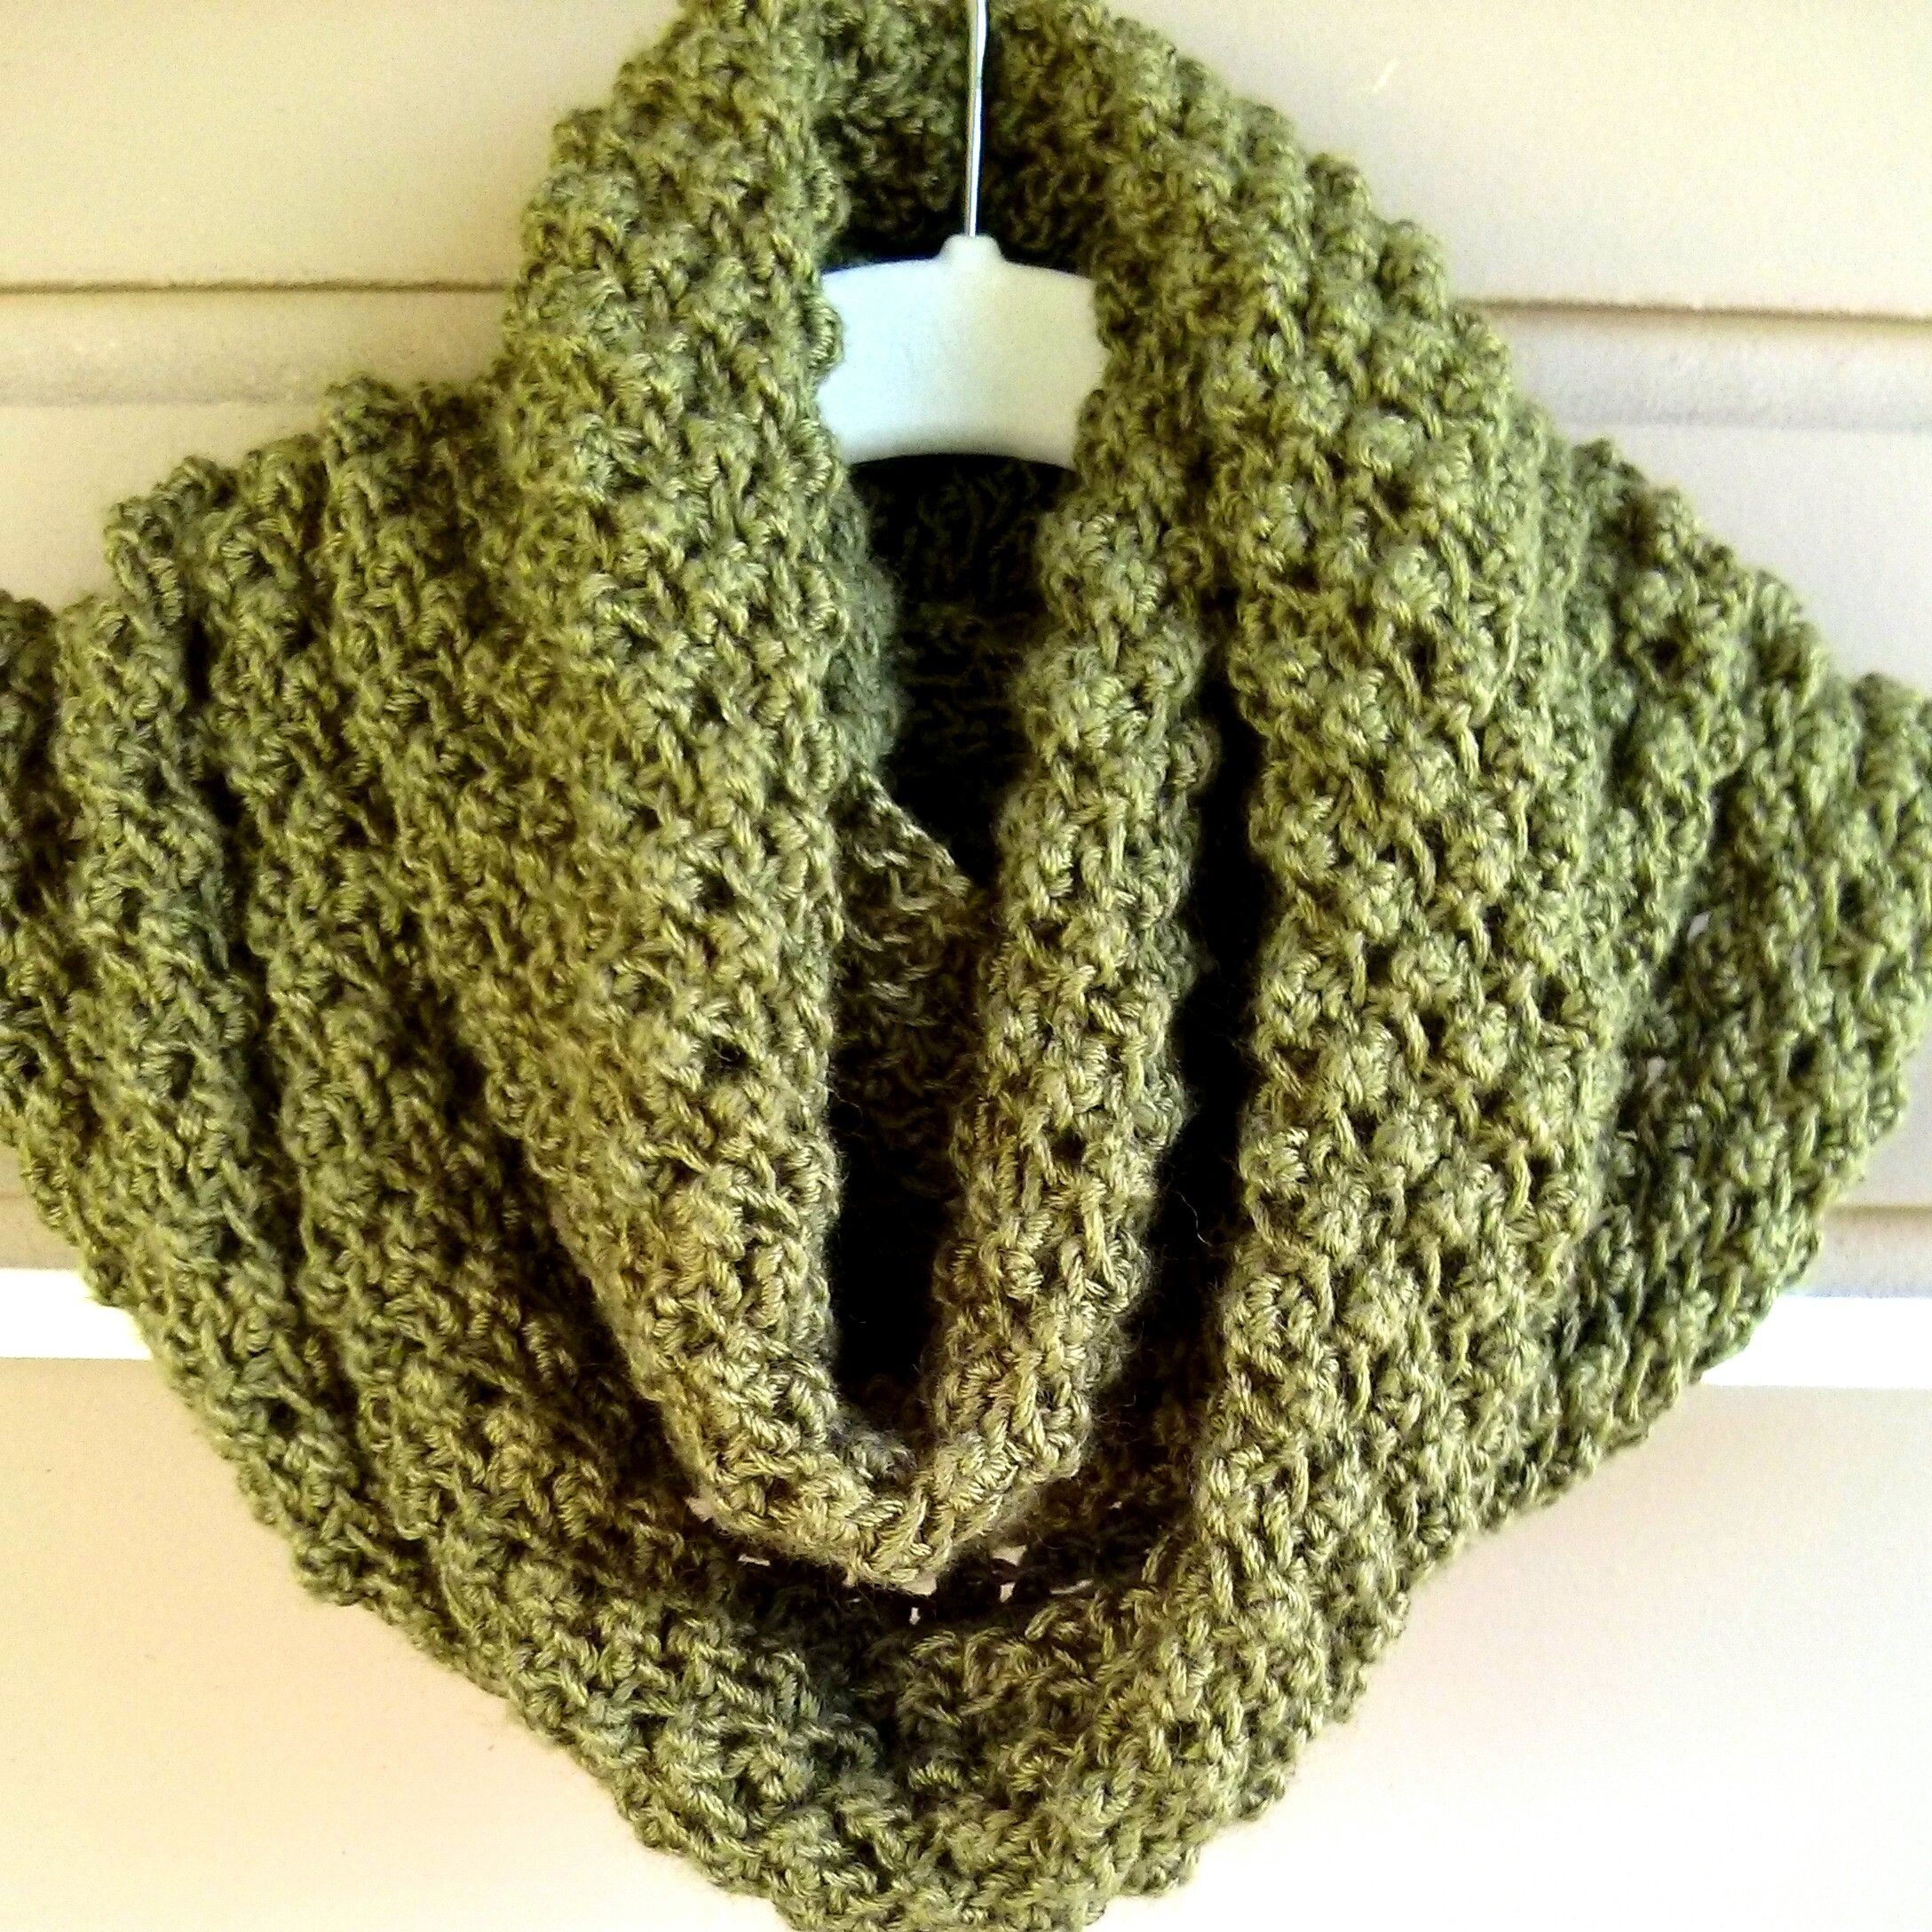 Crochet Cowl All The Best Ideas You Ll Love For My Mom Crochet